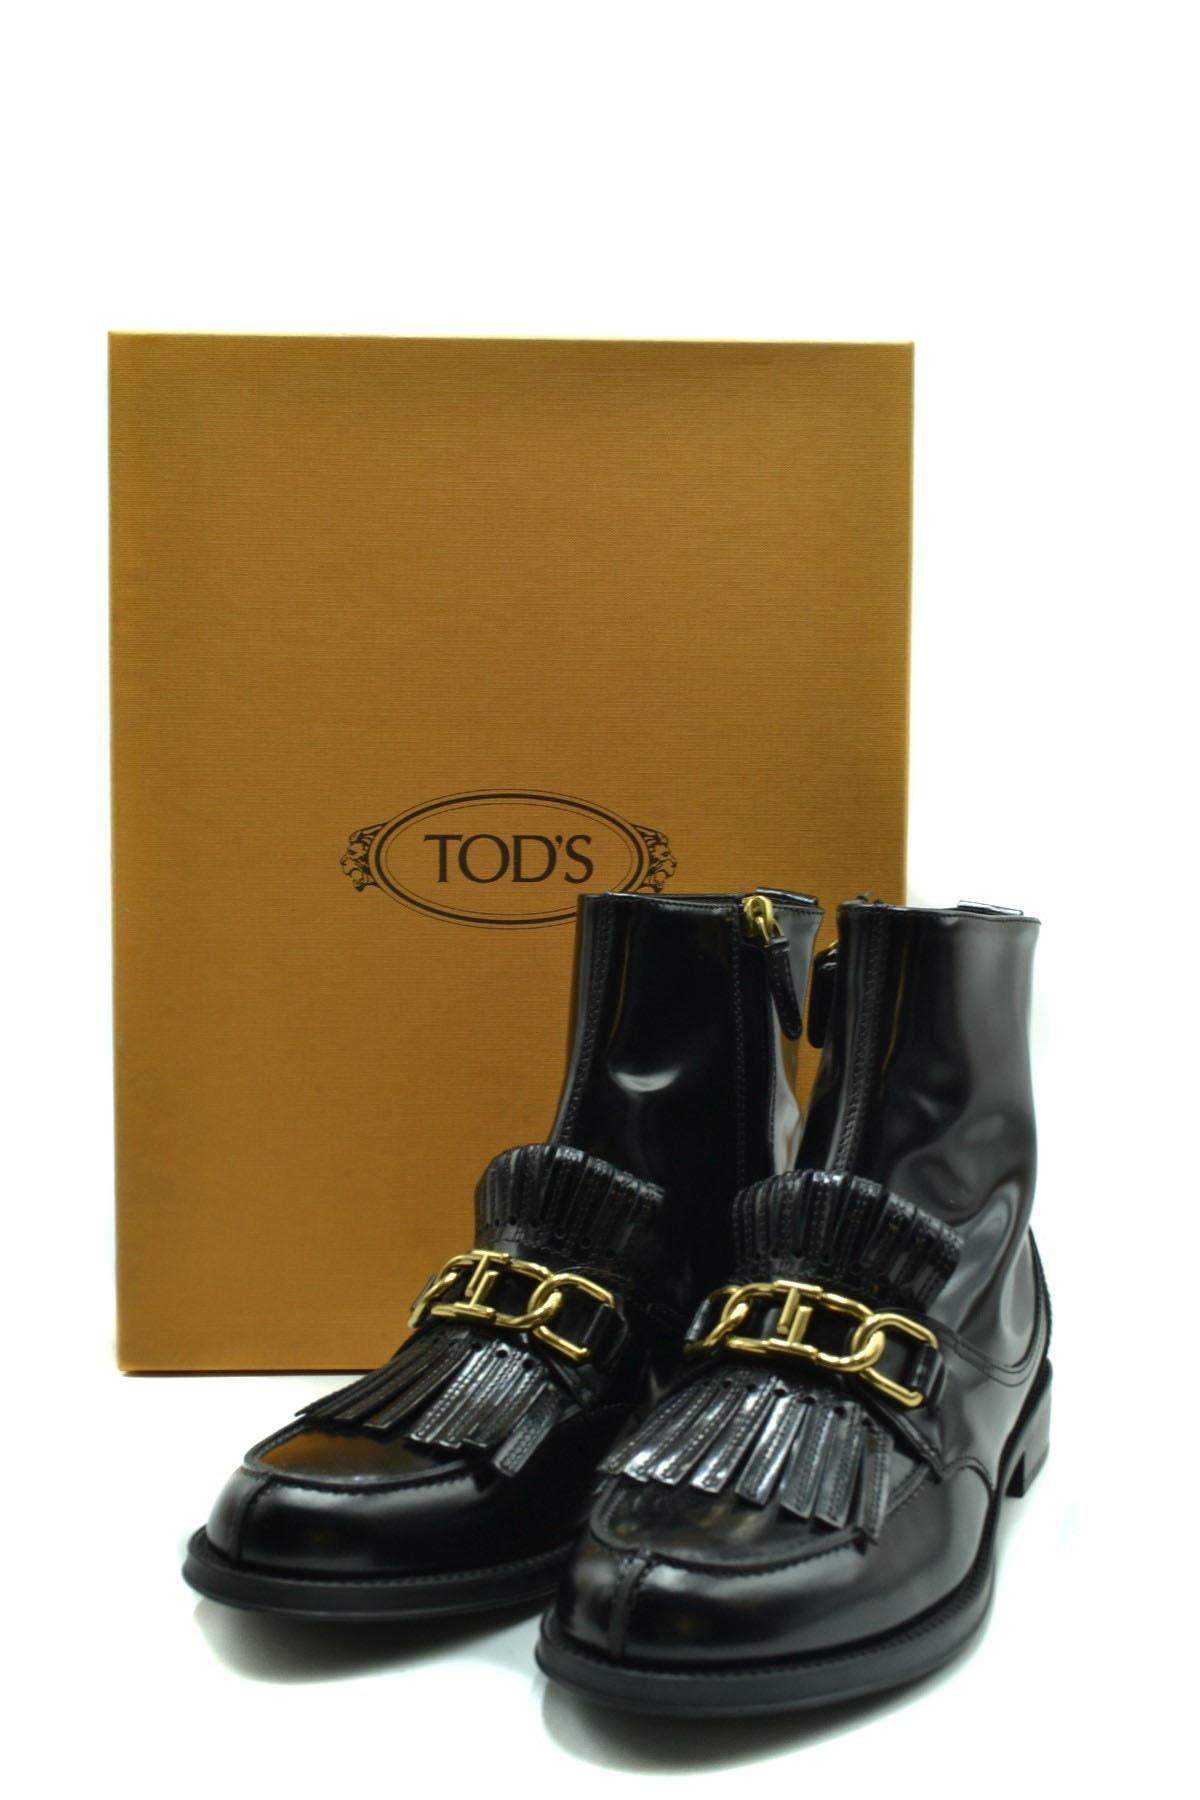 Shoes Tod'S-Women's Fashion - Women's Shoes - Women's Boots-Product Details Terms: New With LabelMain Color: BlackType Of Accessory: BootsSeason: Fall / WinterMade In: ItalyGender: WomanSize: EuComposition: Leather 100%Year: 2020Manufacturer Part Number: Xxw0Ru0Z880Shab999-Keyomi-Sook